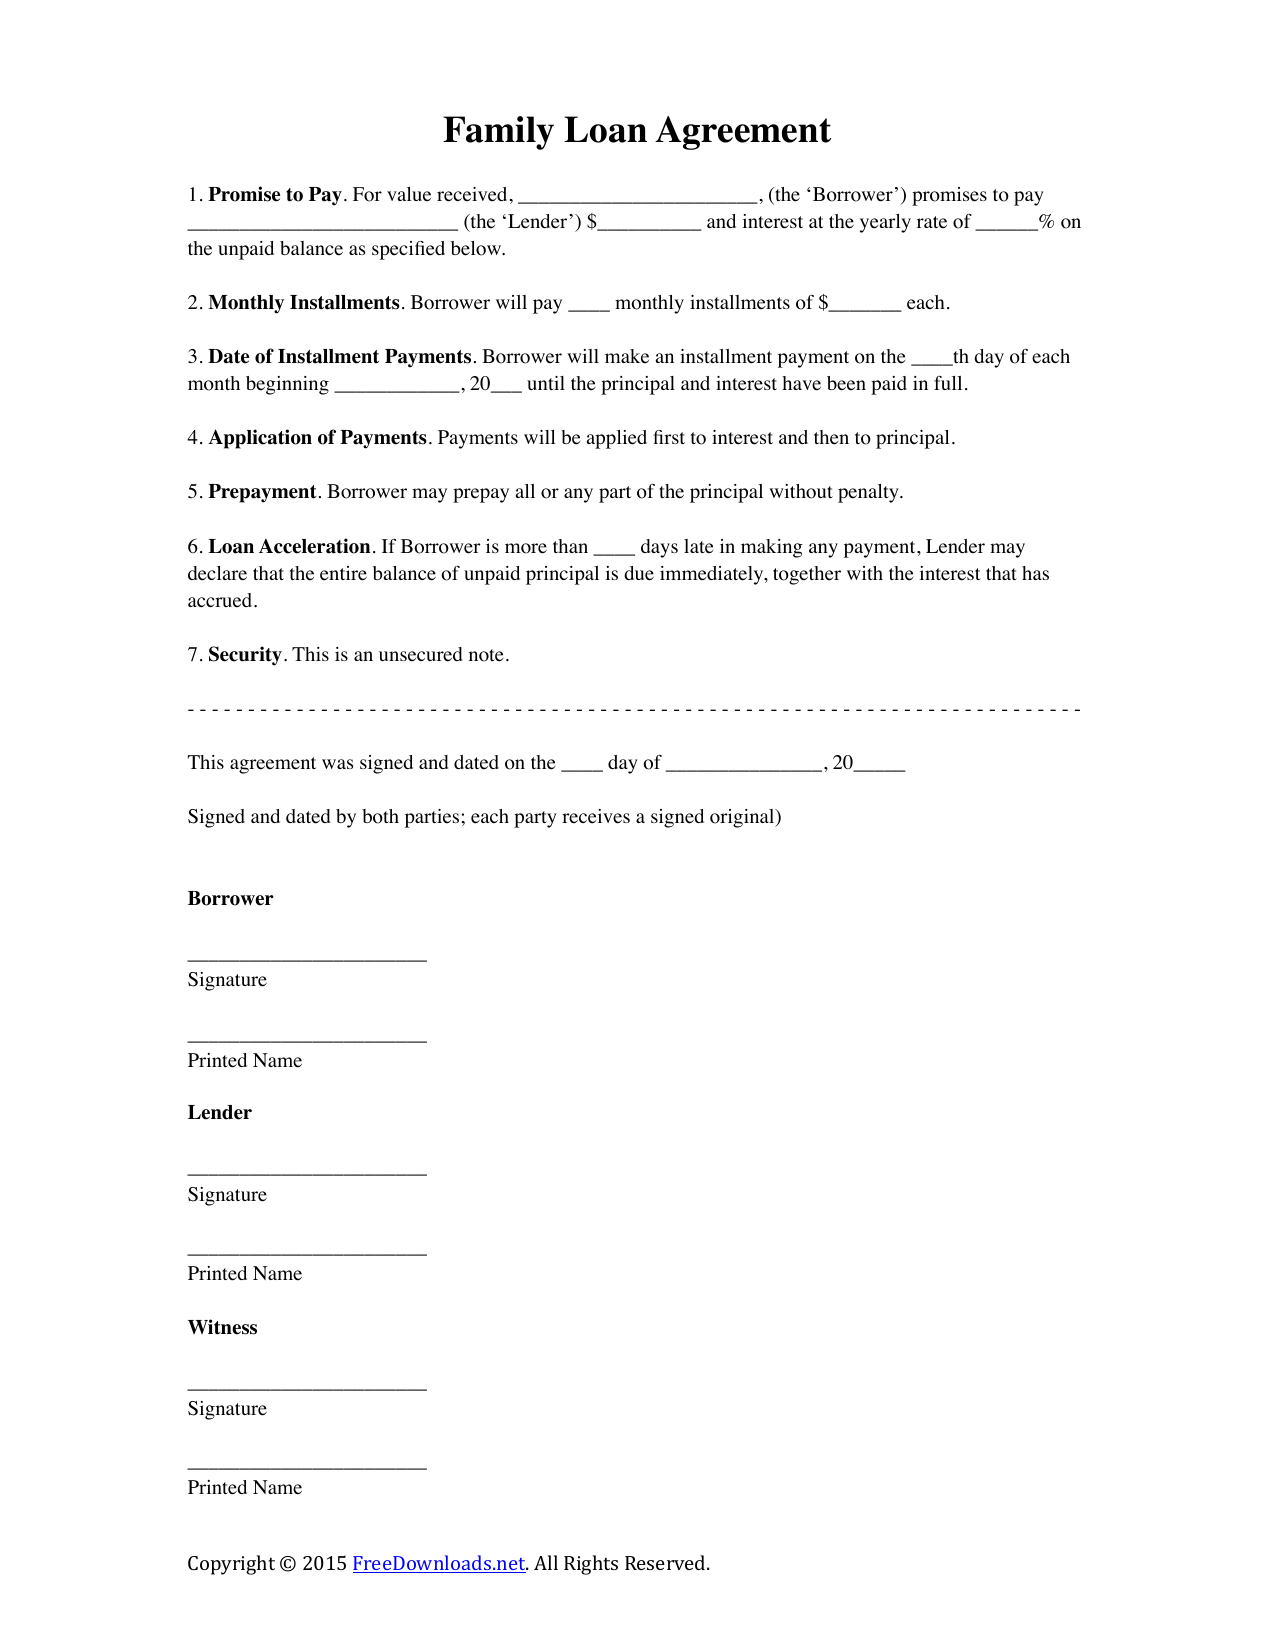 Download Family Loan Agreement Template  Pdf  Rtf  Word With Regard To Family Loan Agreement Template Free